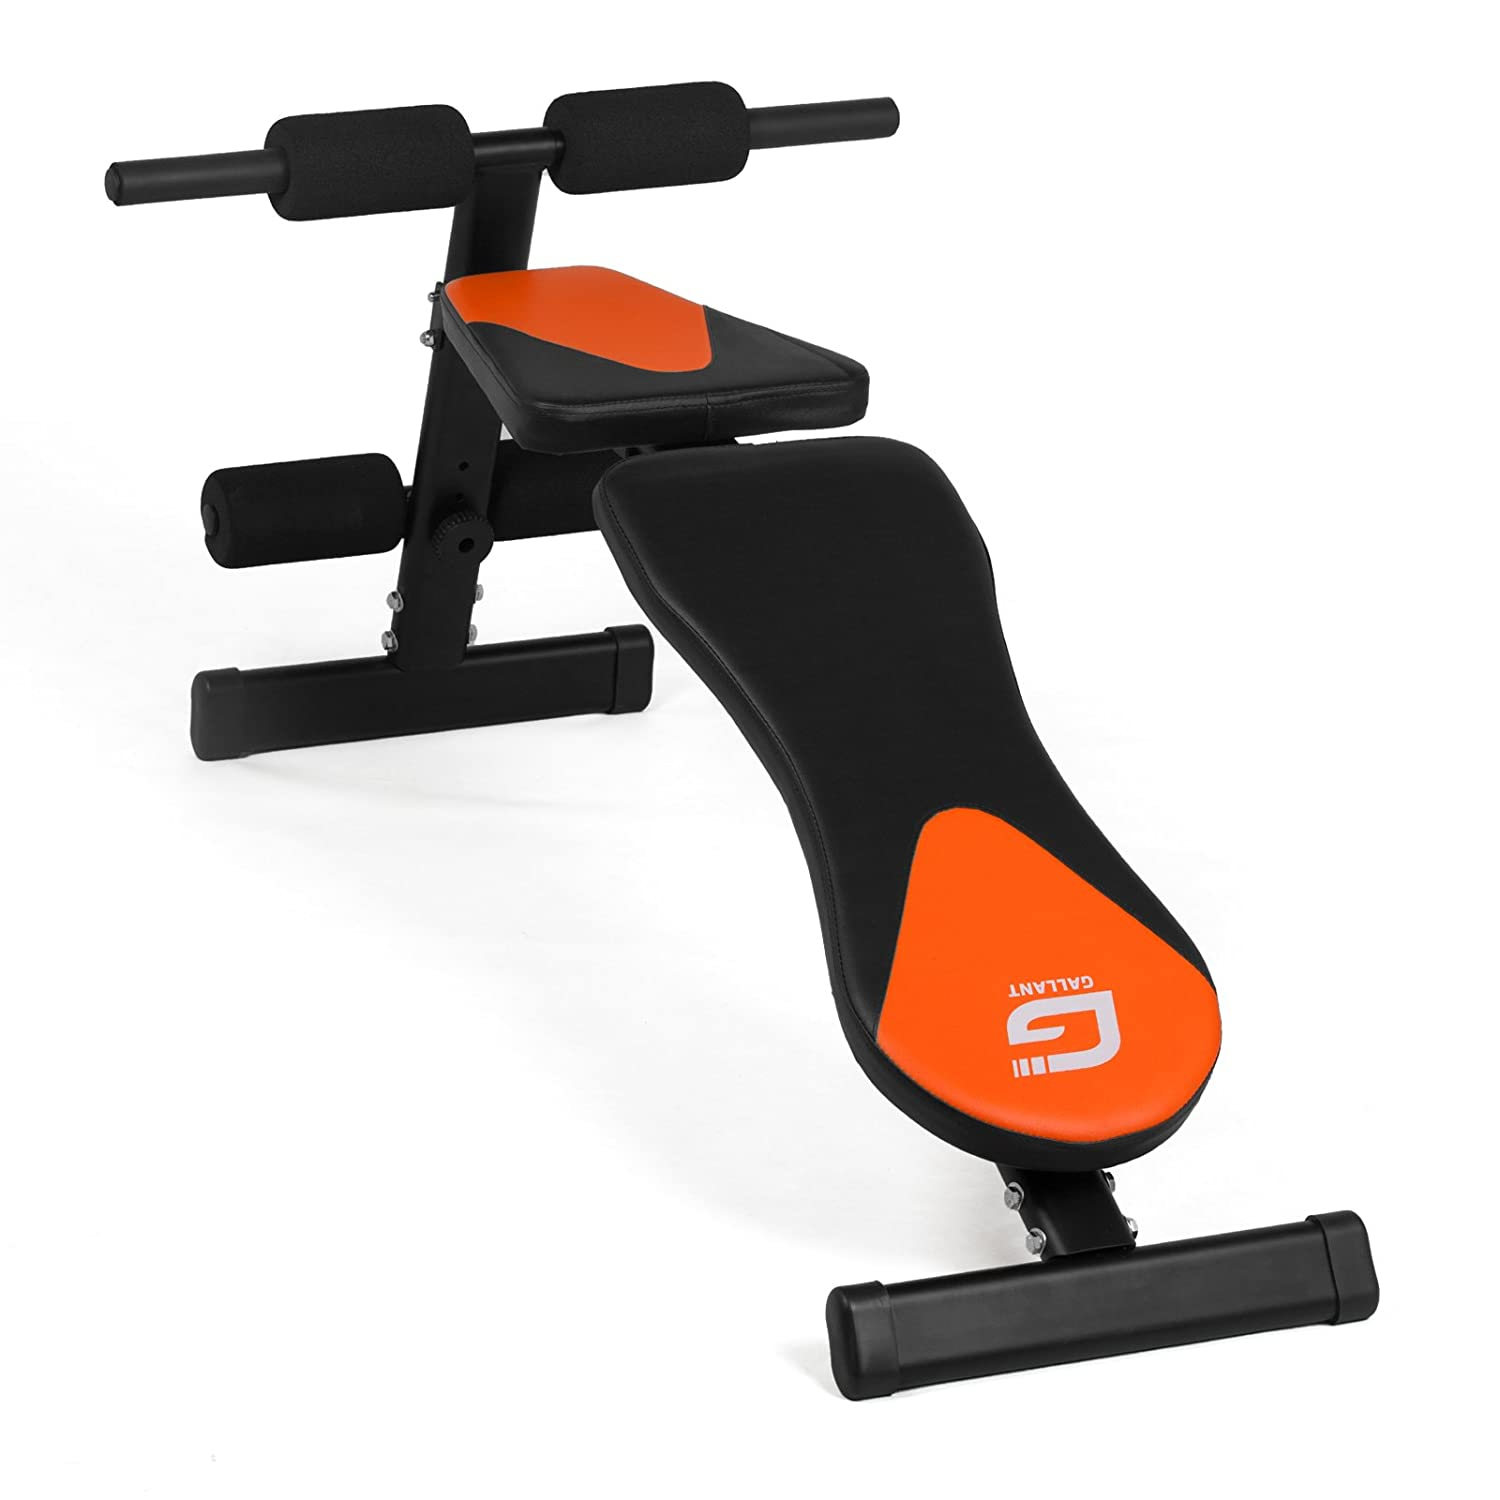 Abs Bench Workout Part - 32: Gallant Weight Bench Weight Lifting Gym Home WorkOut Bench Height  Adjustable Utility Bench Flat Incline Decline Abs Adjustable Barbell  Crunch: Amazon.co.uk: ...